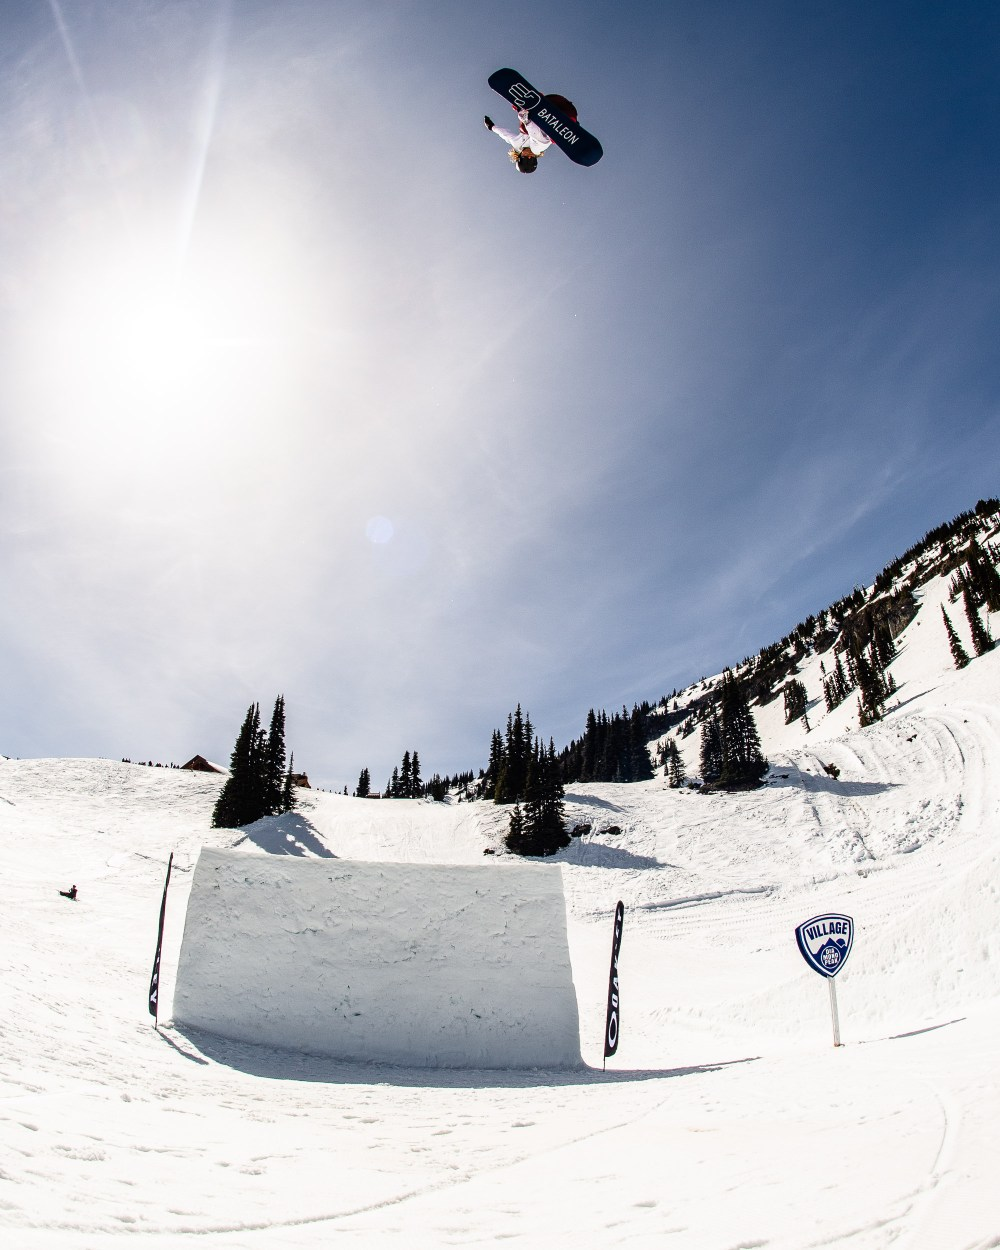 Grant_Day_5_superpark_22_stone 2